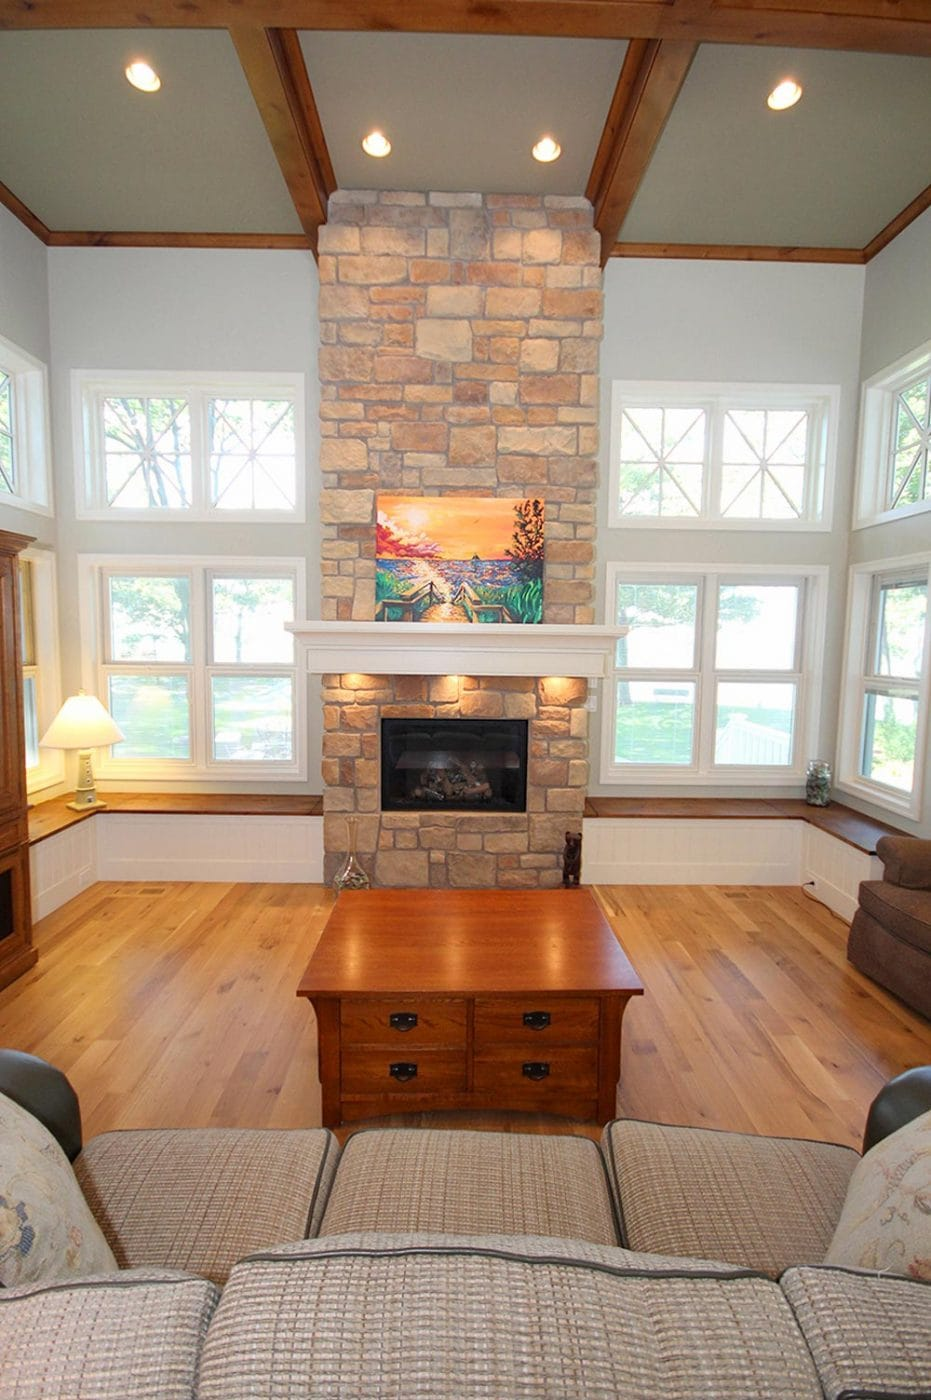 Interiors This Is My Kind Of Log Cabin See Evan: Beach House Interior Finishes, Lake Michigan Custom Beach